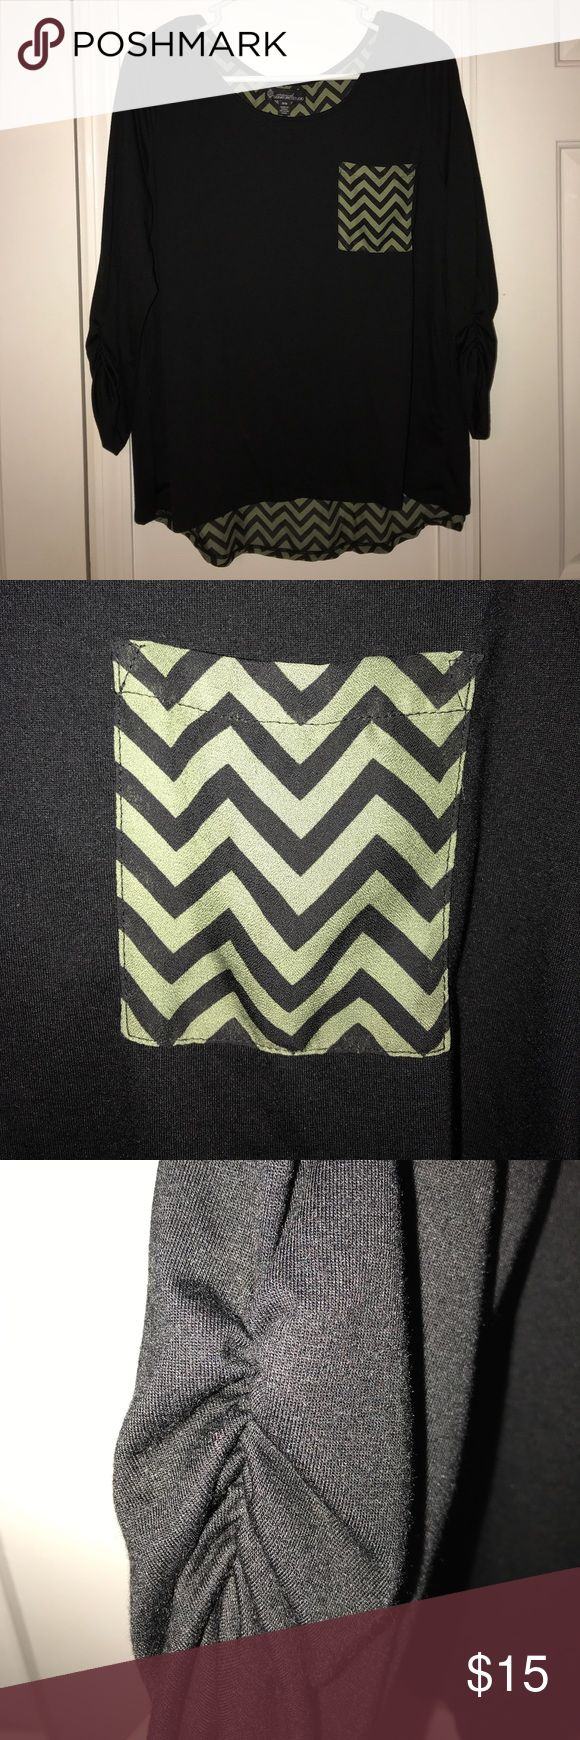 Chevron Top Black and olive chevron top. Cinched sleeves. Open back. Size medium. Never worn. Tops Blouses